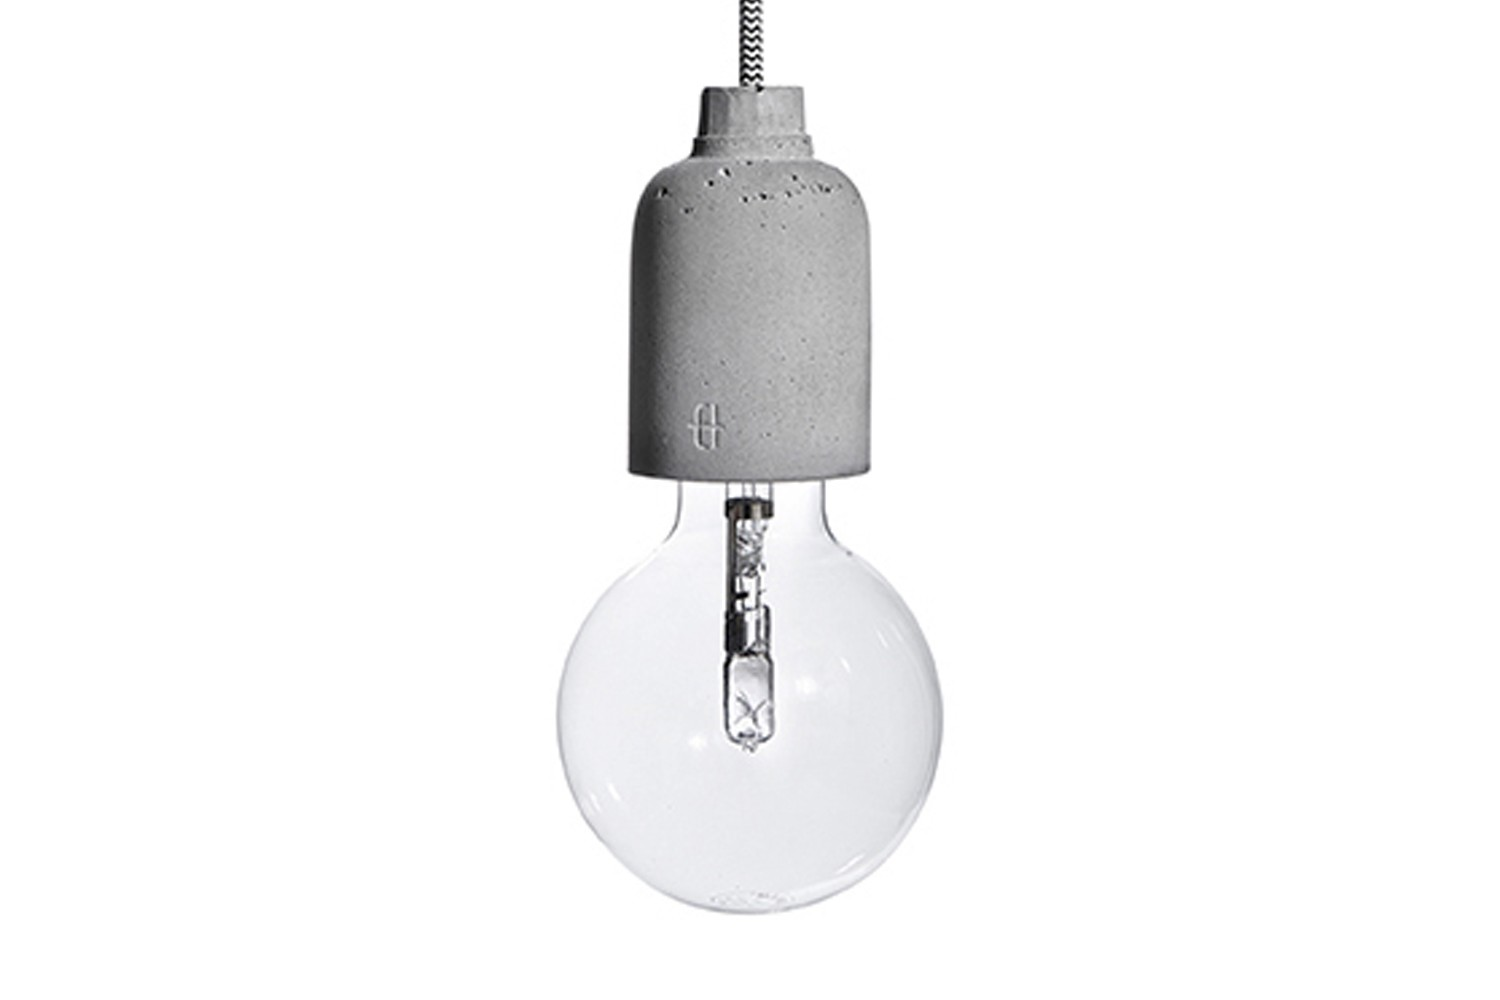 Ampulla Pic Concrete Pendant Light 200 cm Cable Lenght